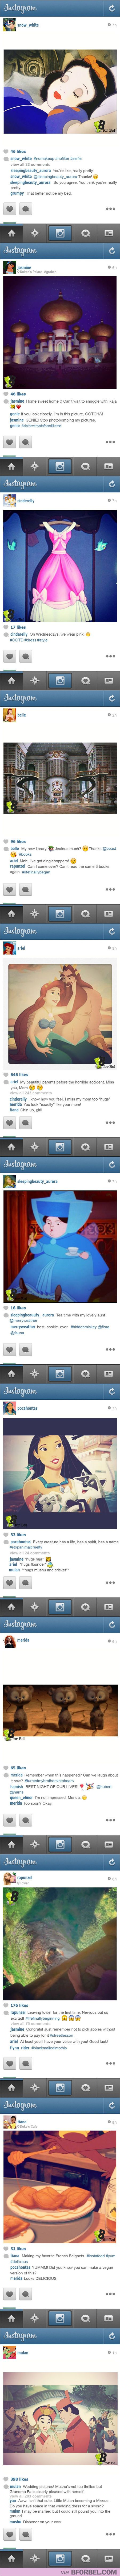 If Disney princesses had instagram... Laughed much harder than I should have! Dishonor on your cow!